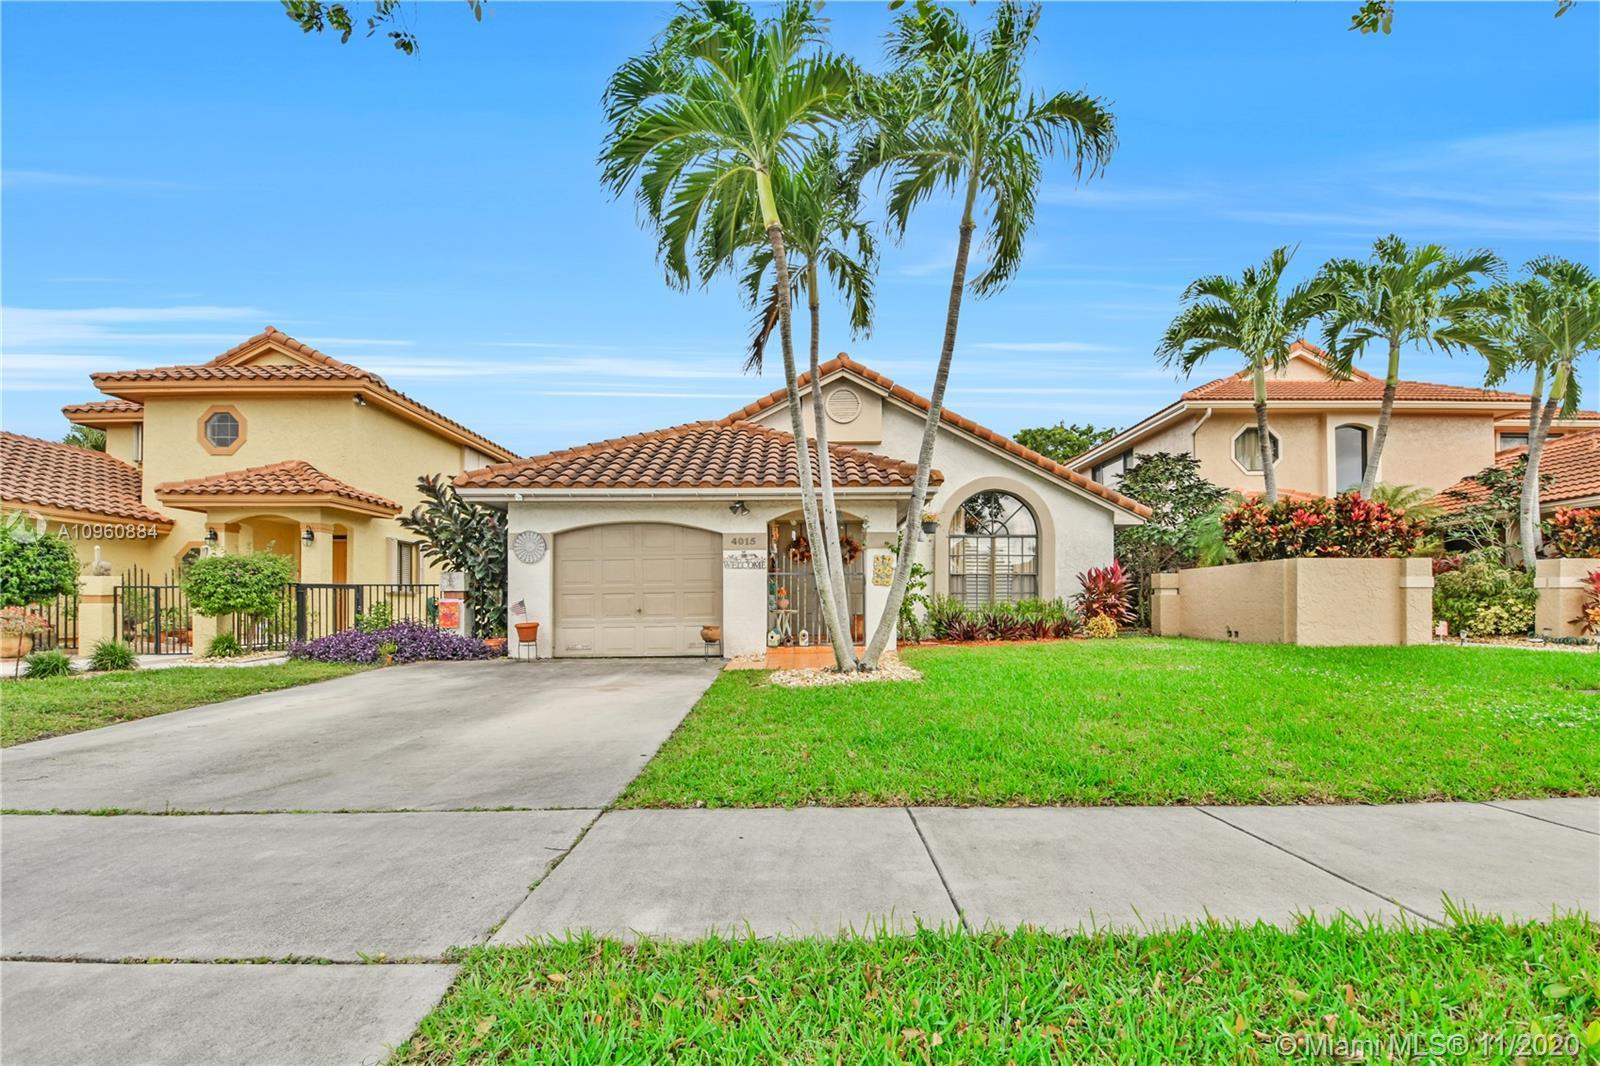 You will love this 1-story home located in the Villages of Hillsboro Deerfield Beach. This one of th